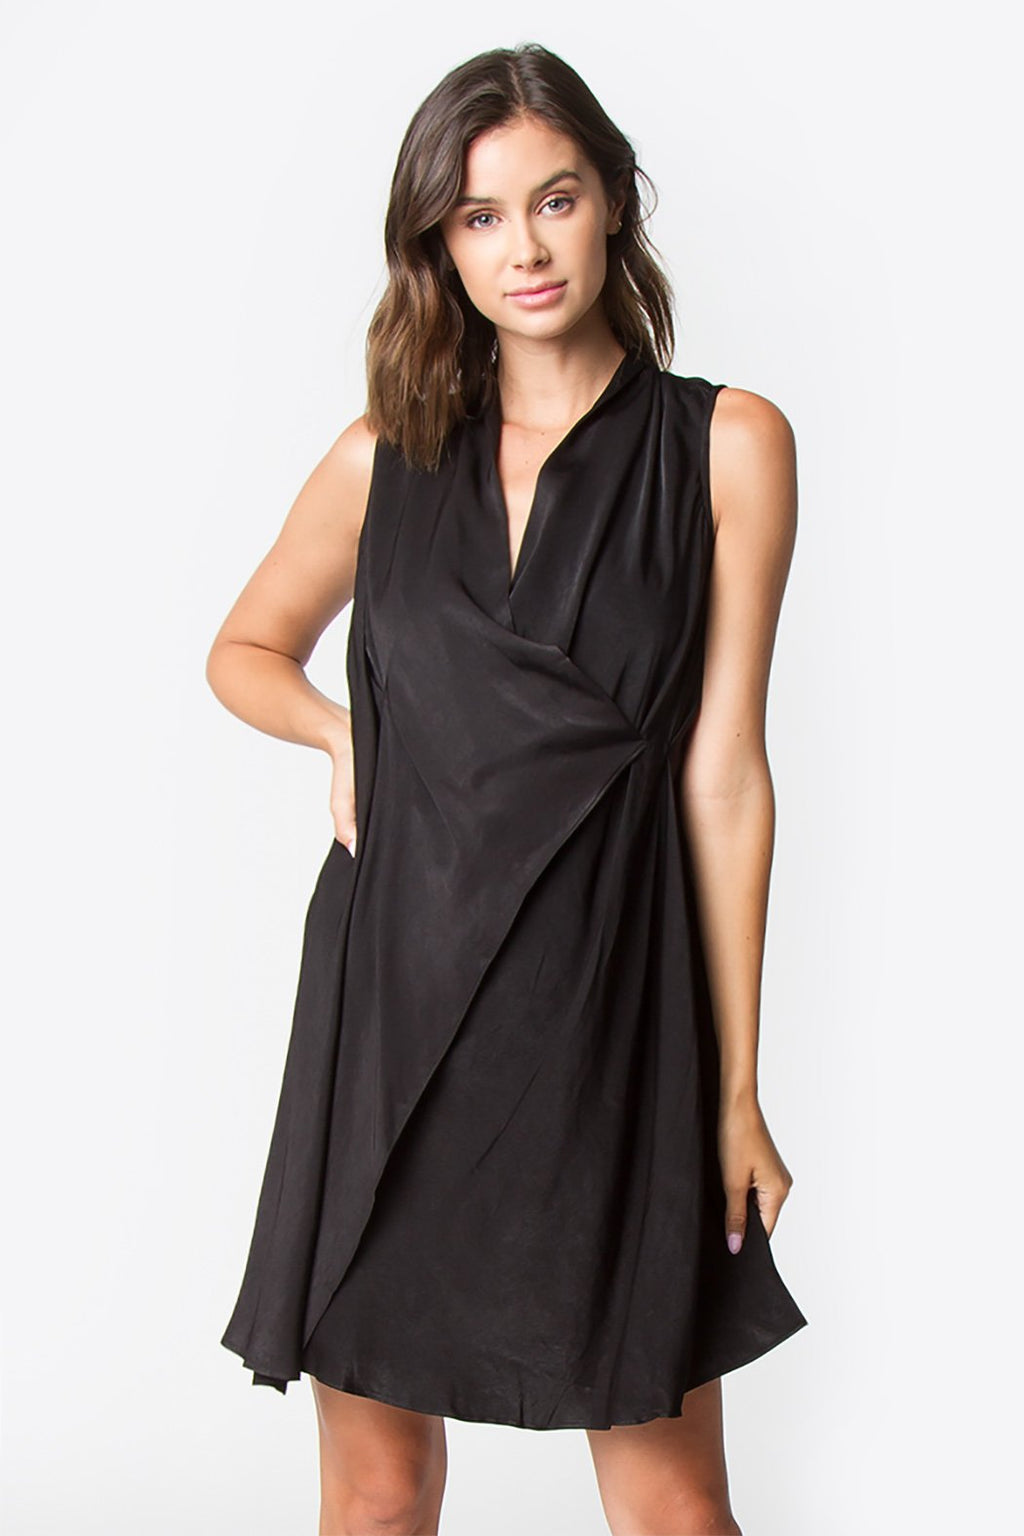 Lexi Cowl Neck Dress